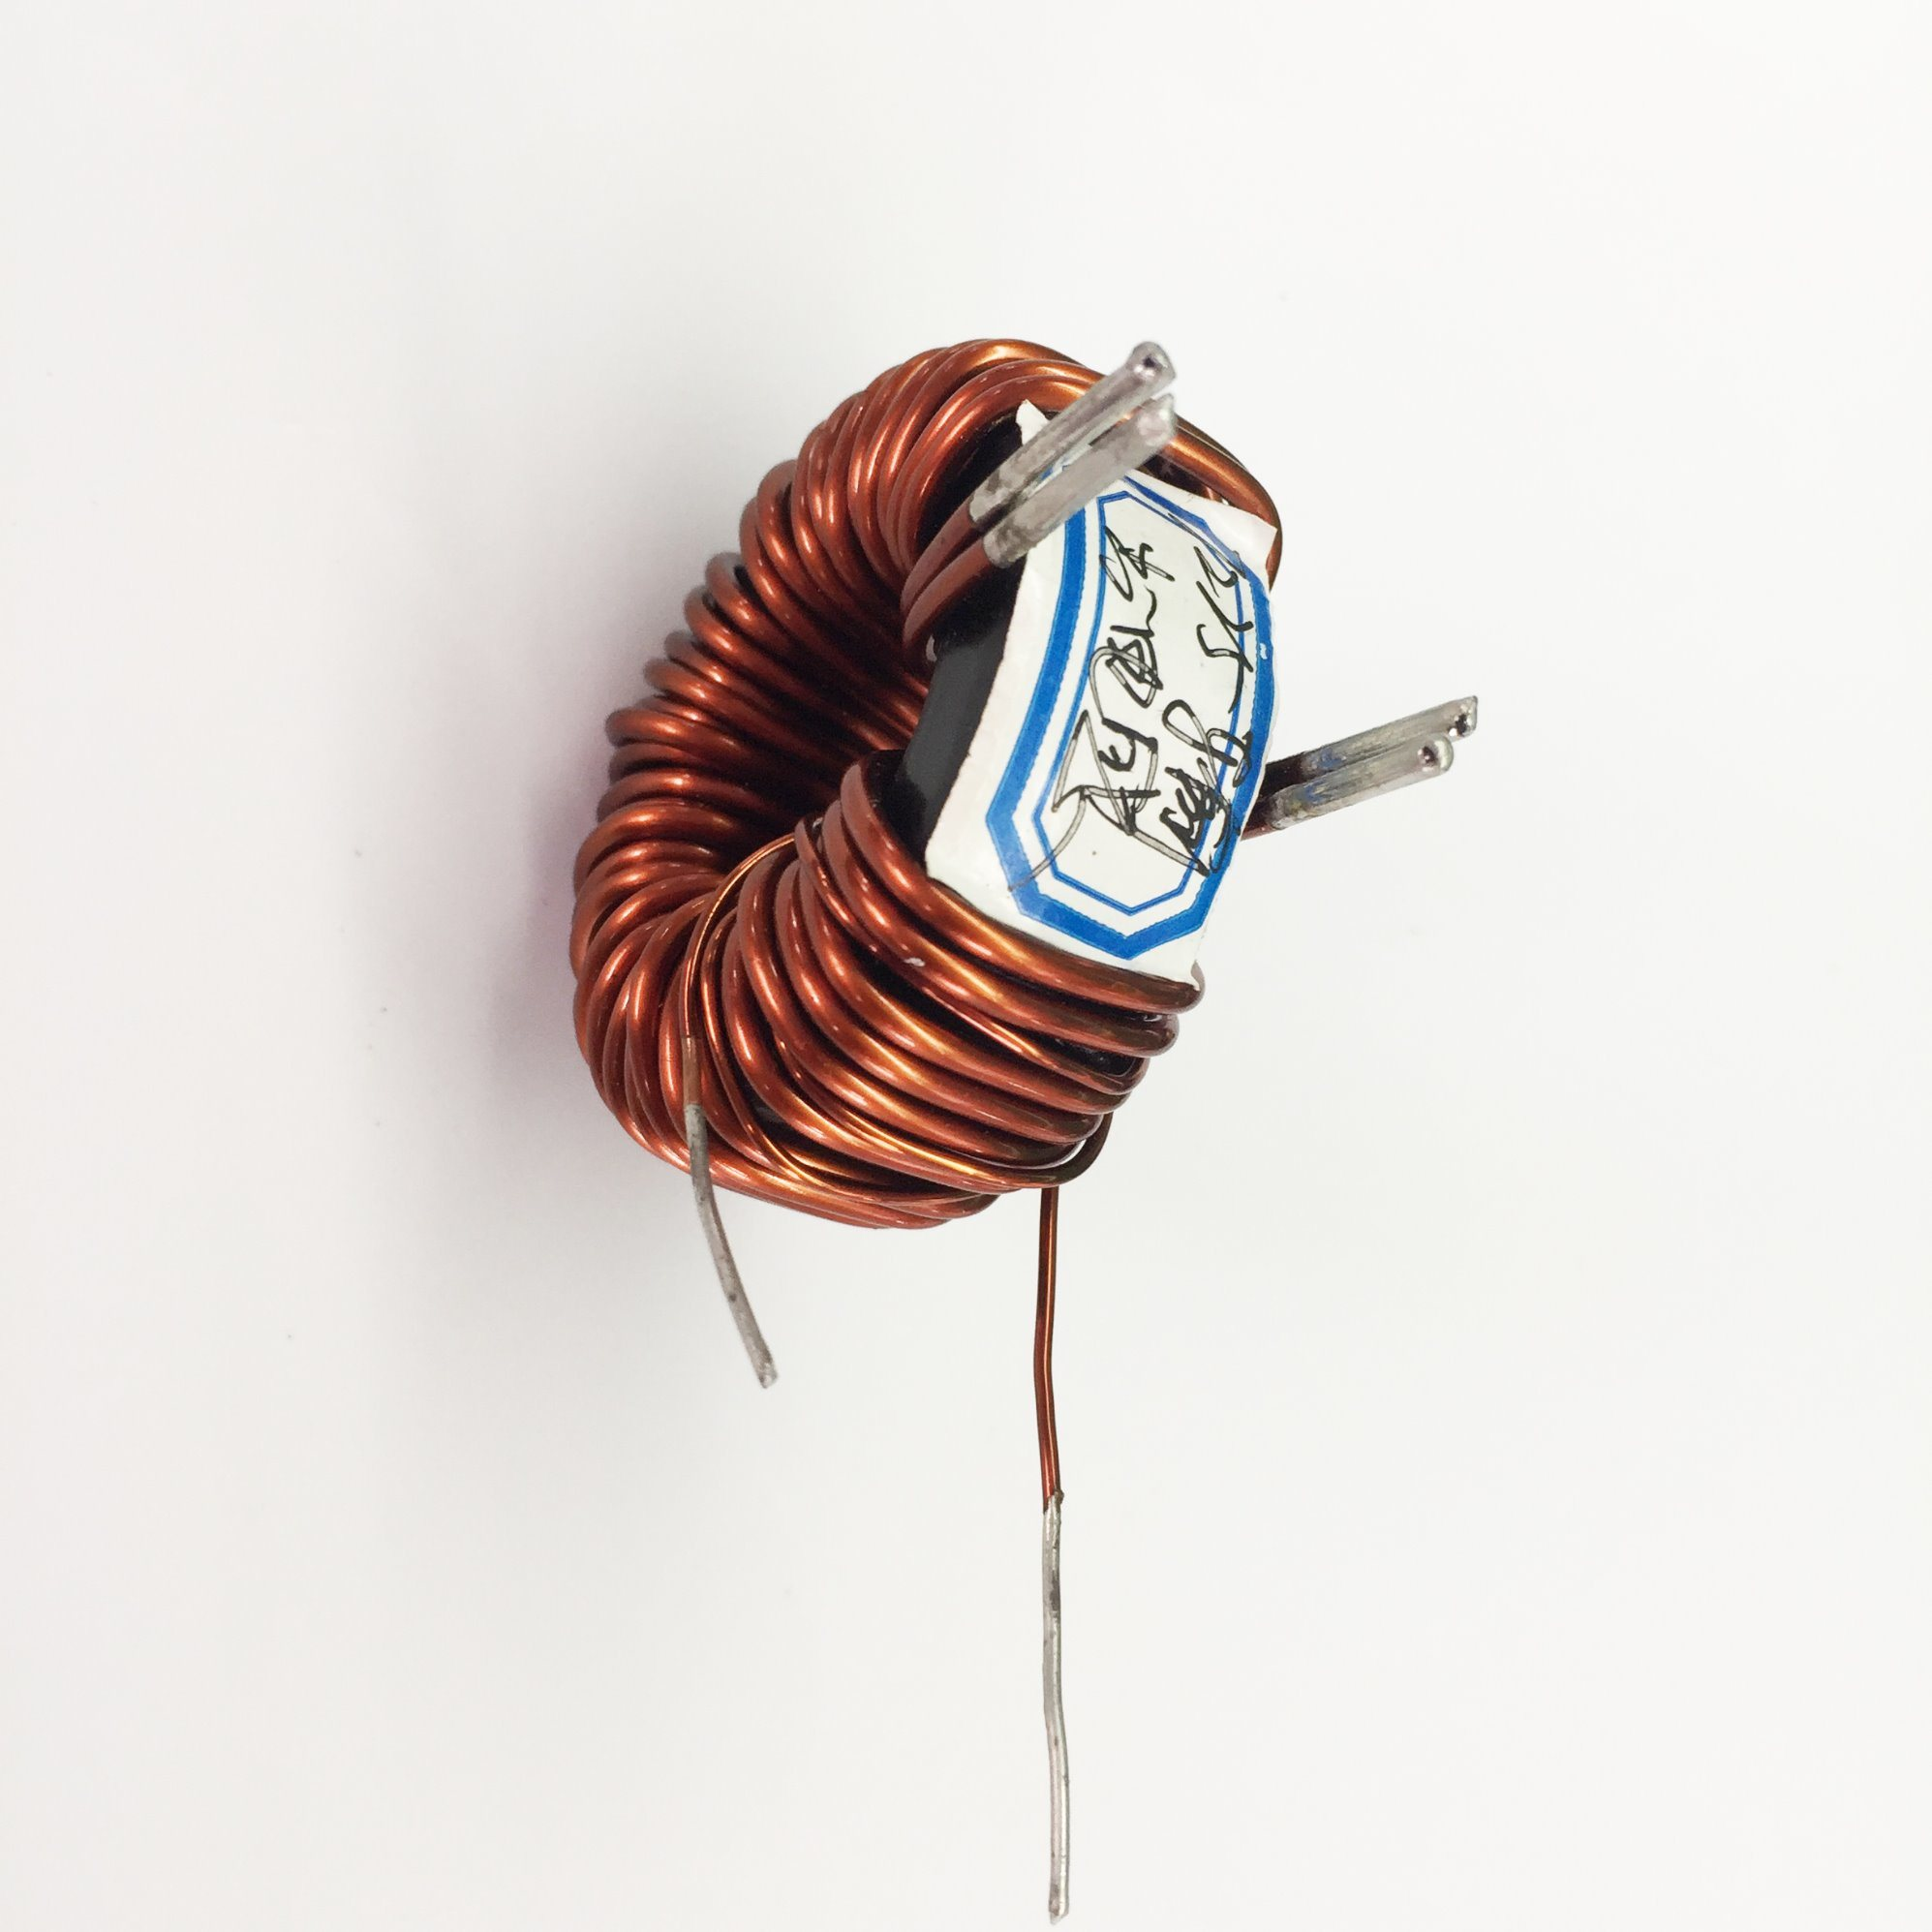 China Winding Chokes Toroidal Core Inductor For Industry Electronics Coils Of Copper Wire Are Commonly Used In Electrical Inductors And Mechanical Device